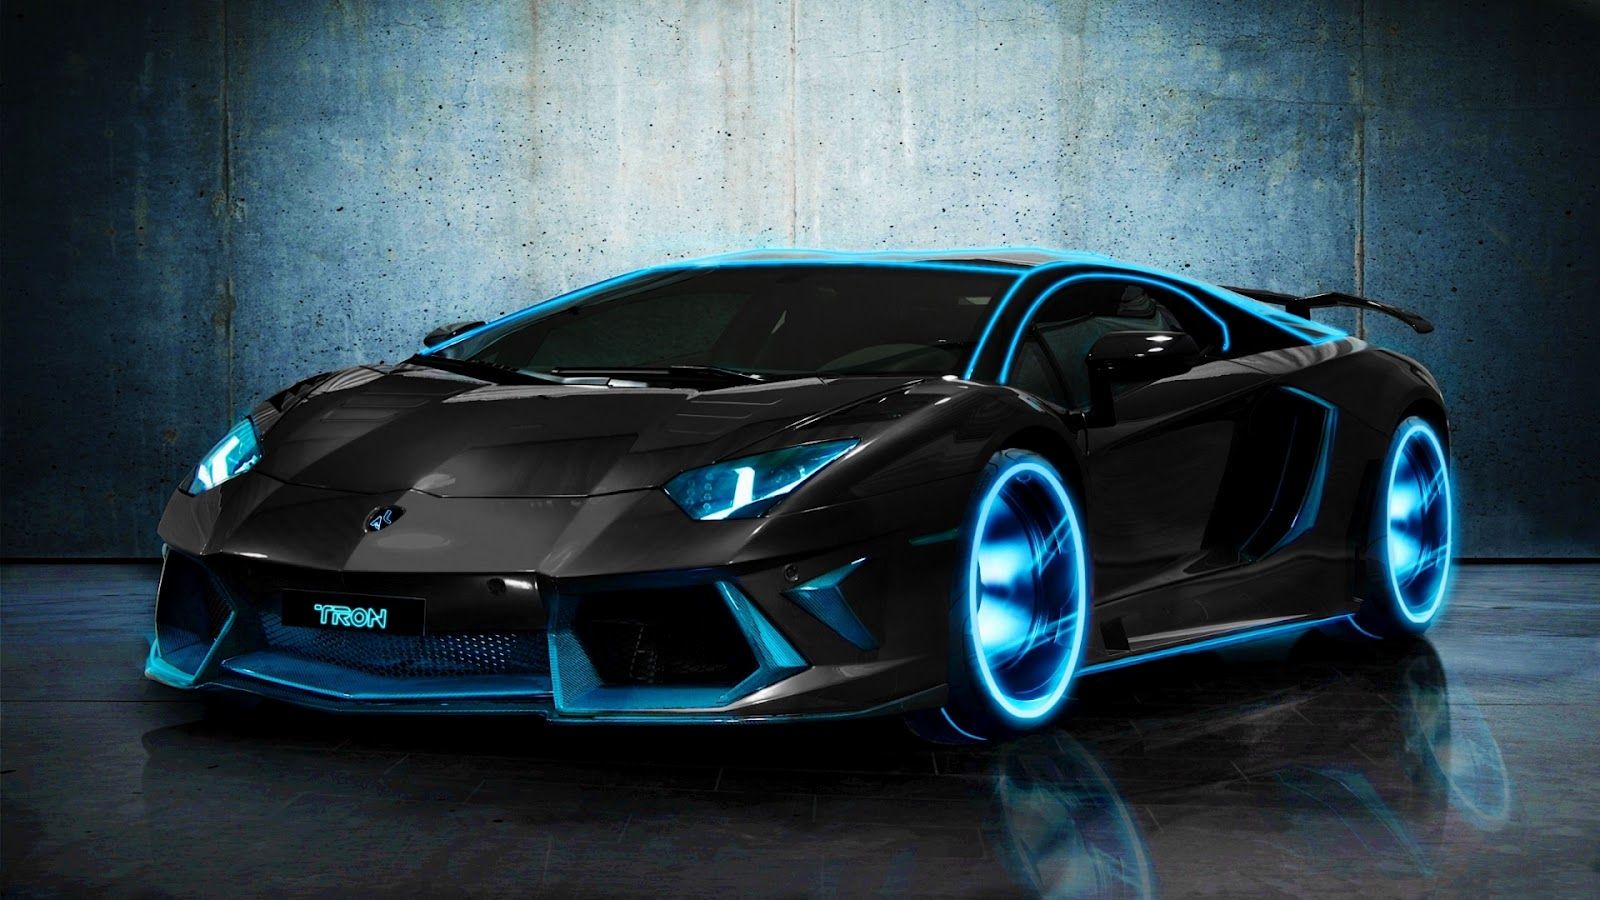 10 Cool Hd Car Wallpapers 1600x900